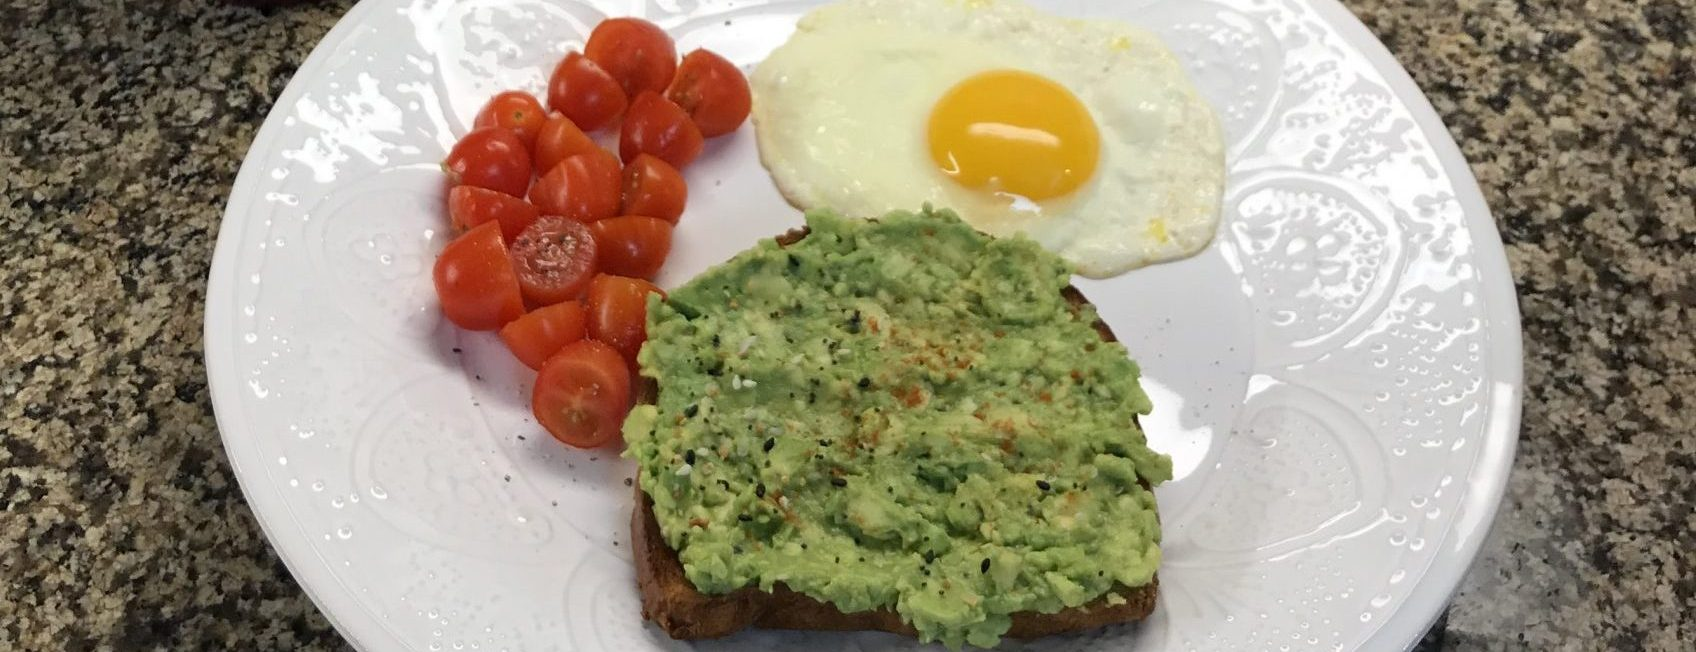 A white plate with cherry tomatoes, avocado toast and a fried egg.